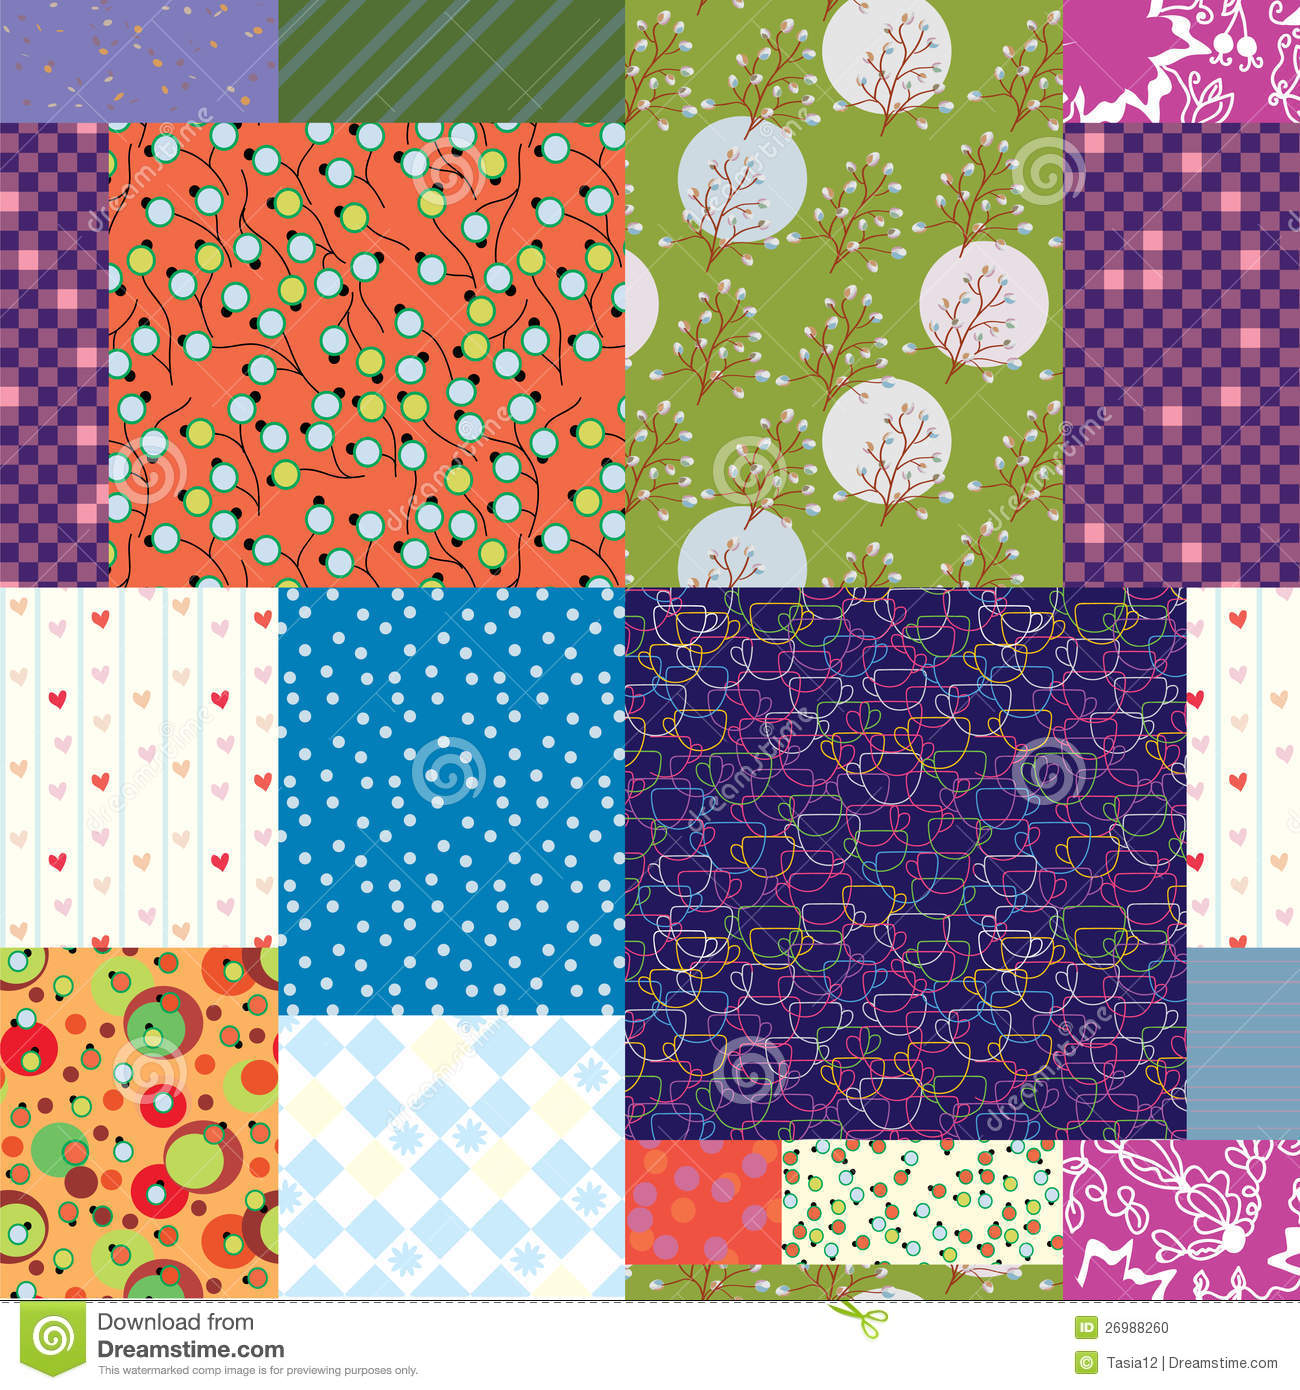 Quilt Patterns With Floral Fabric : Seamless Quilt Pattern - Floral Fabrics Stock Photo - Image: 26988260